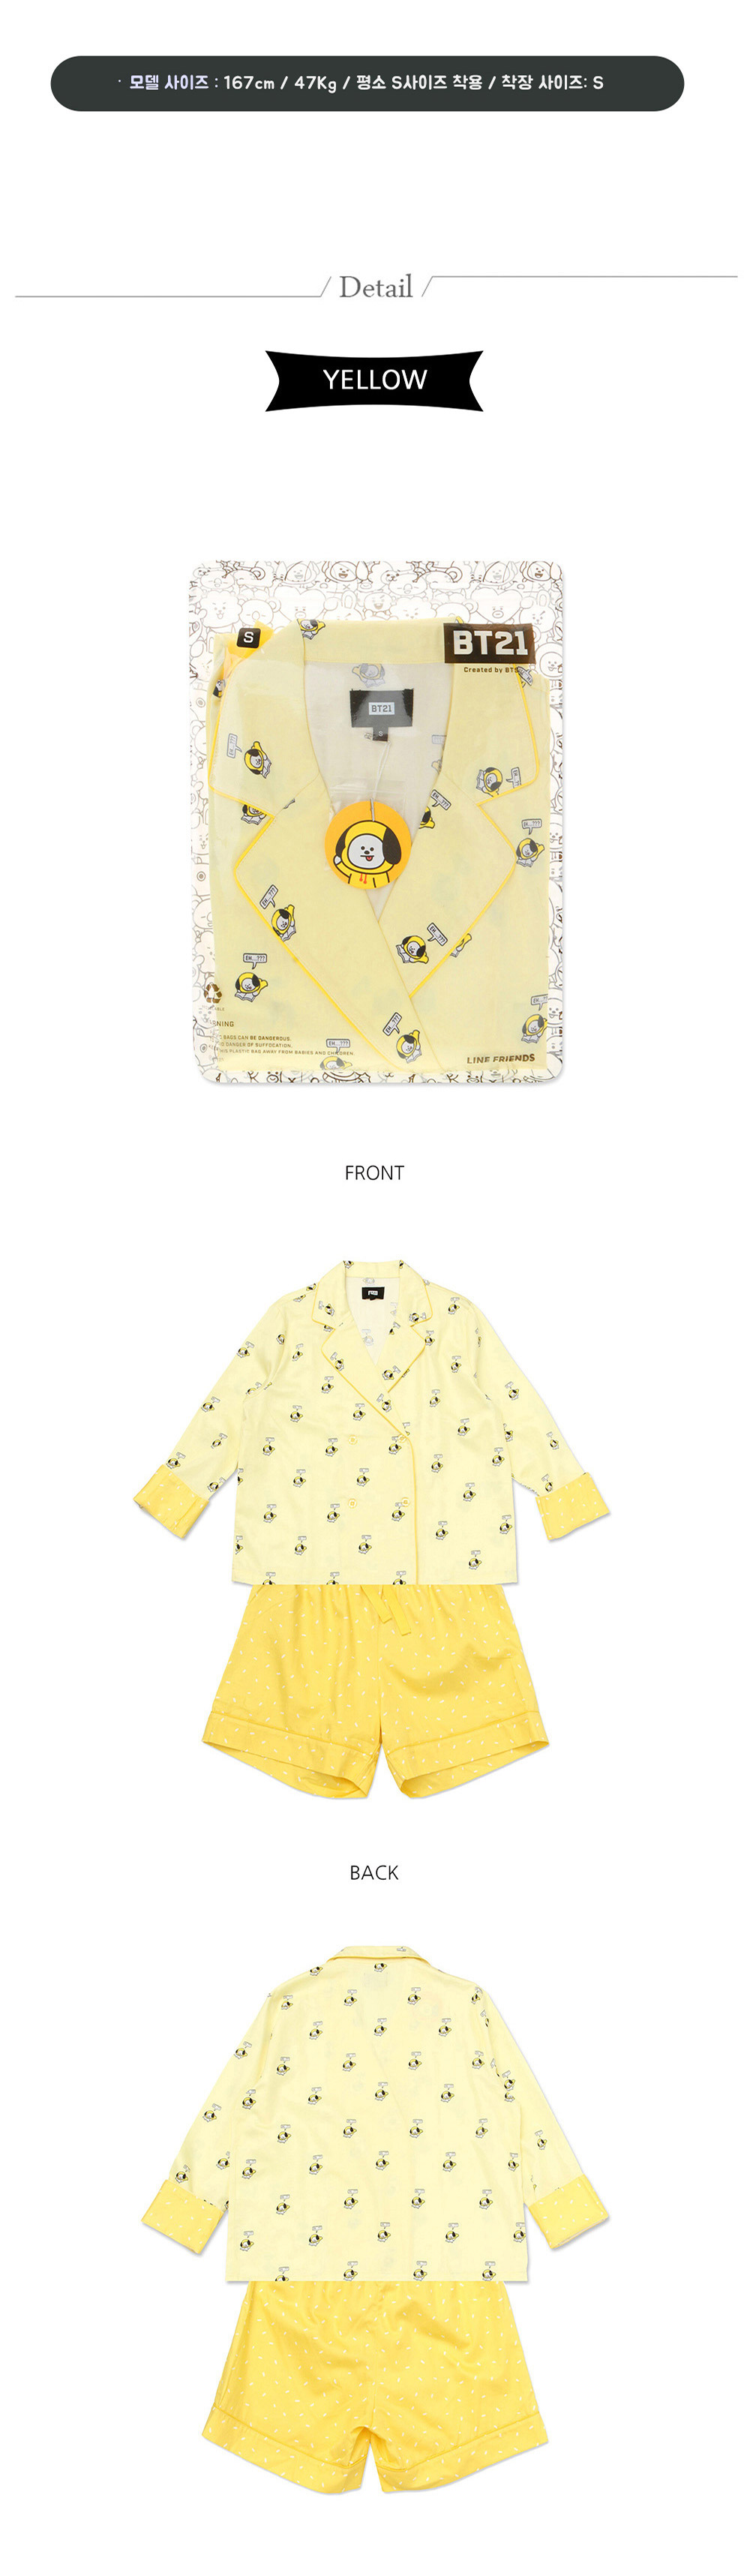 bt21_hunt_7pajama_05.jpg